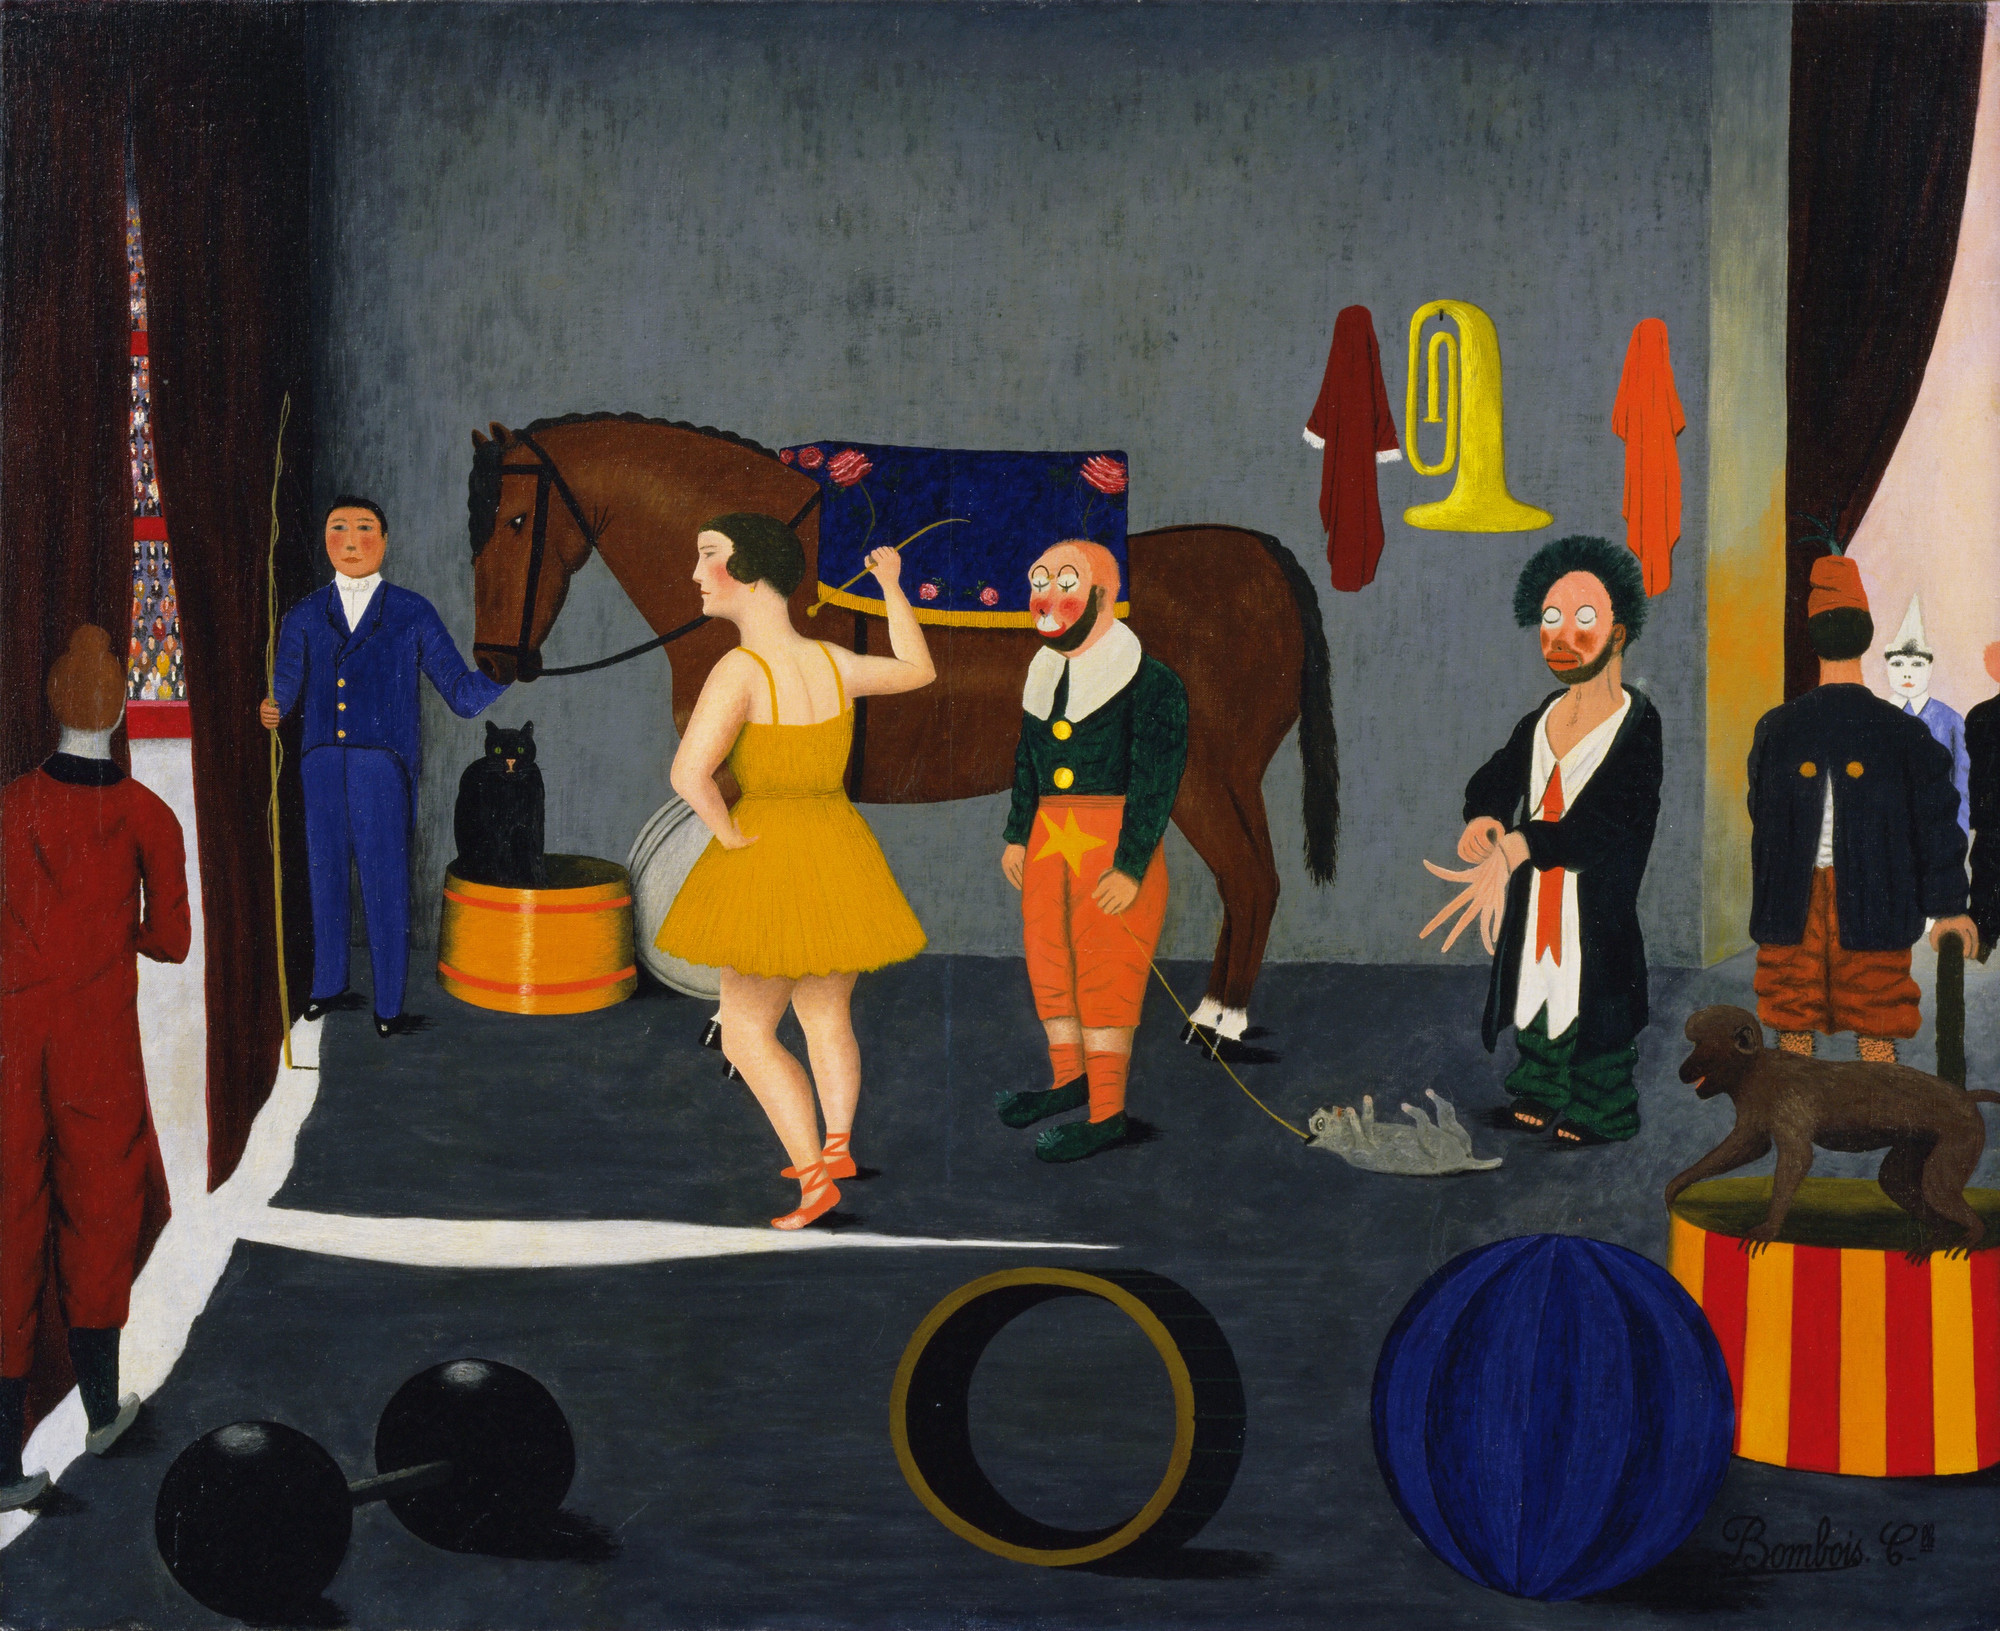 Camille Bombois. Before Entering the Ring. 1930-35